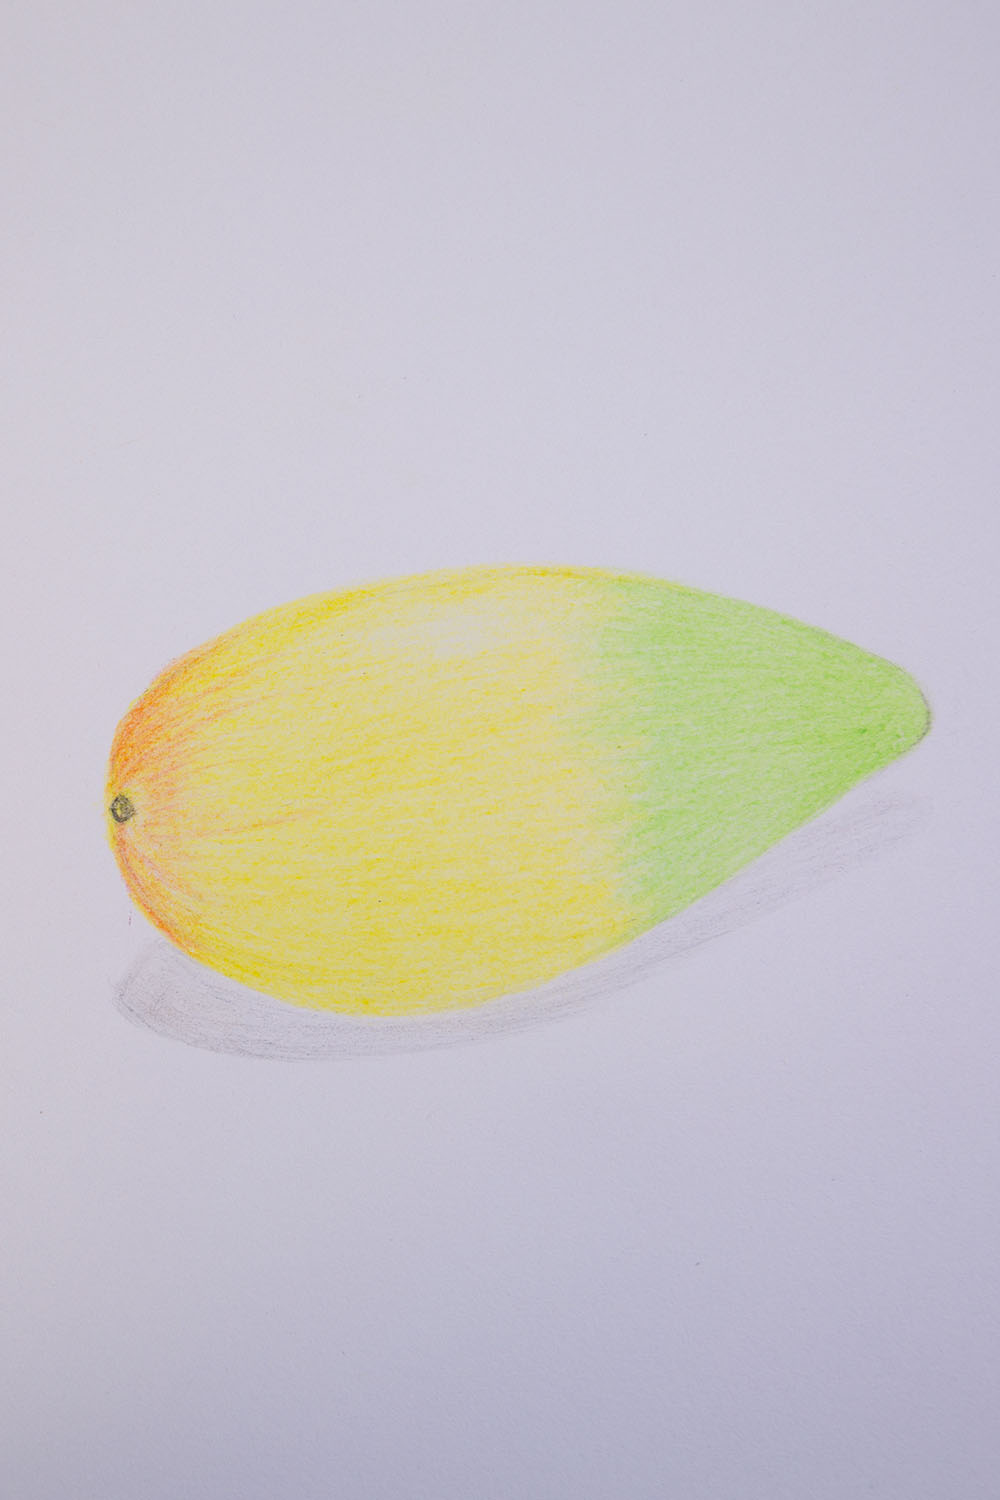 How to draw a mango